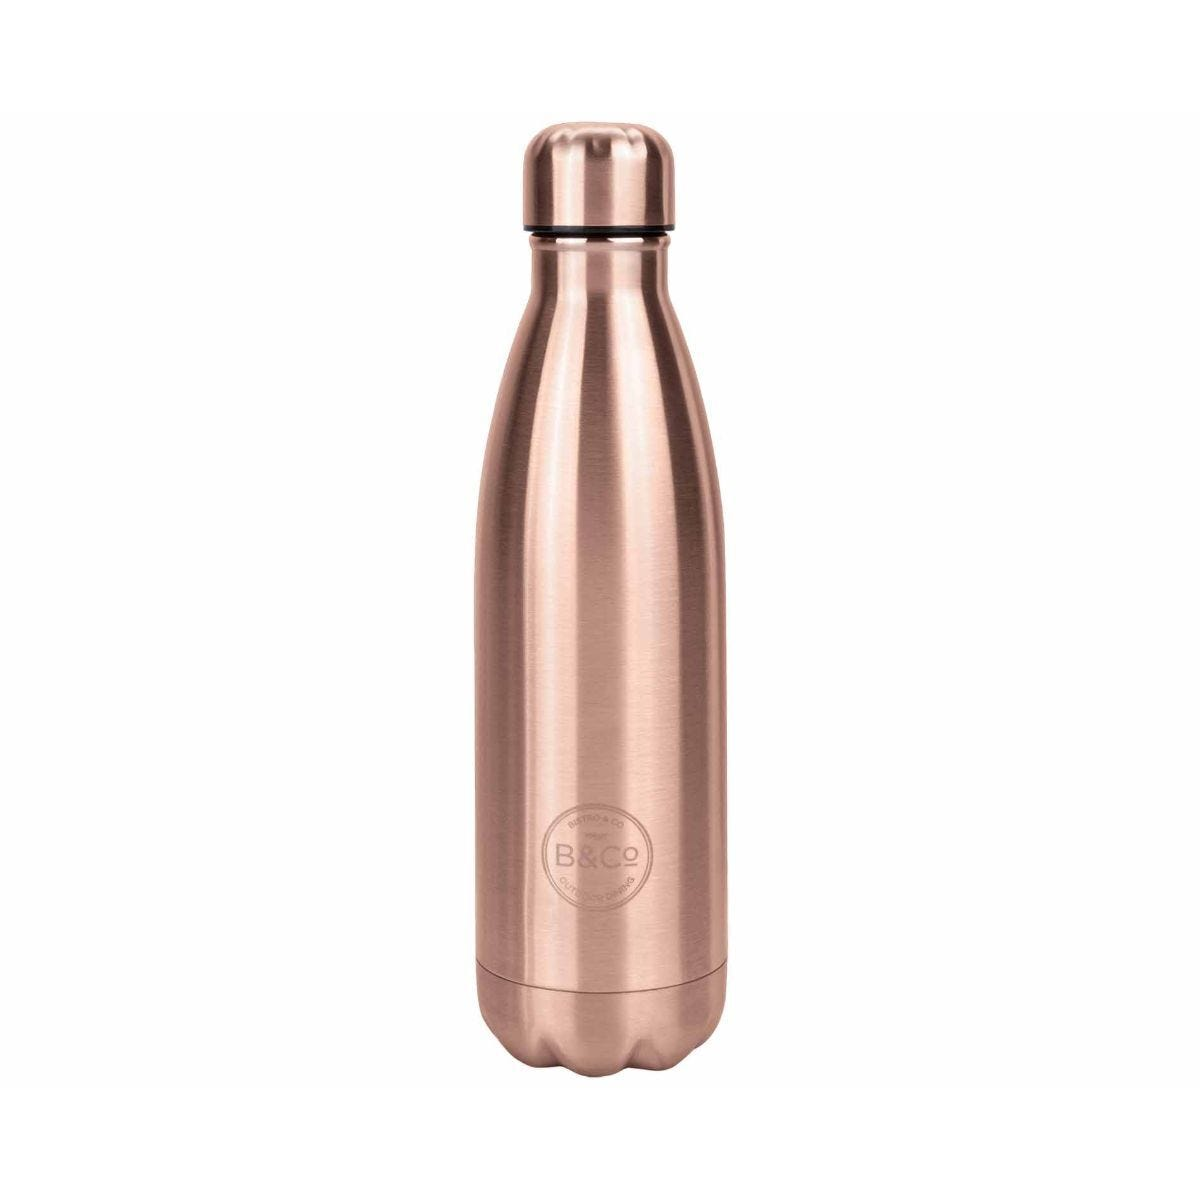 B and Co Stainless Steel Thermal Bottle Flask 500ml Rose Gold